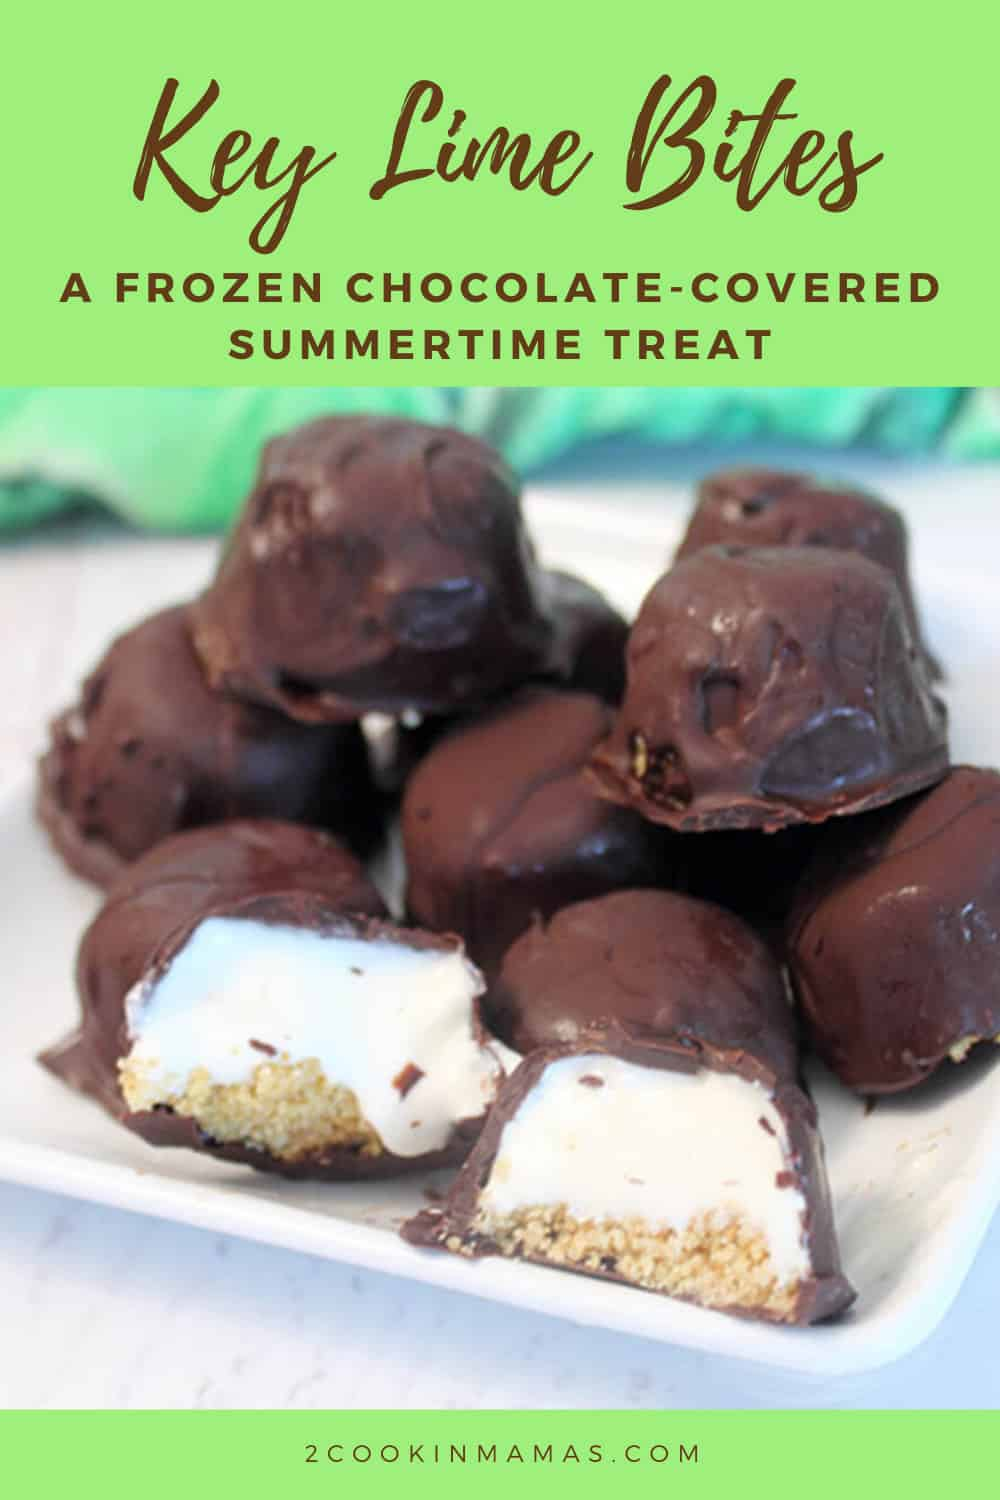 Chocolate Covered Key Lime Bites